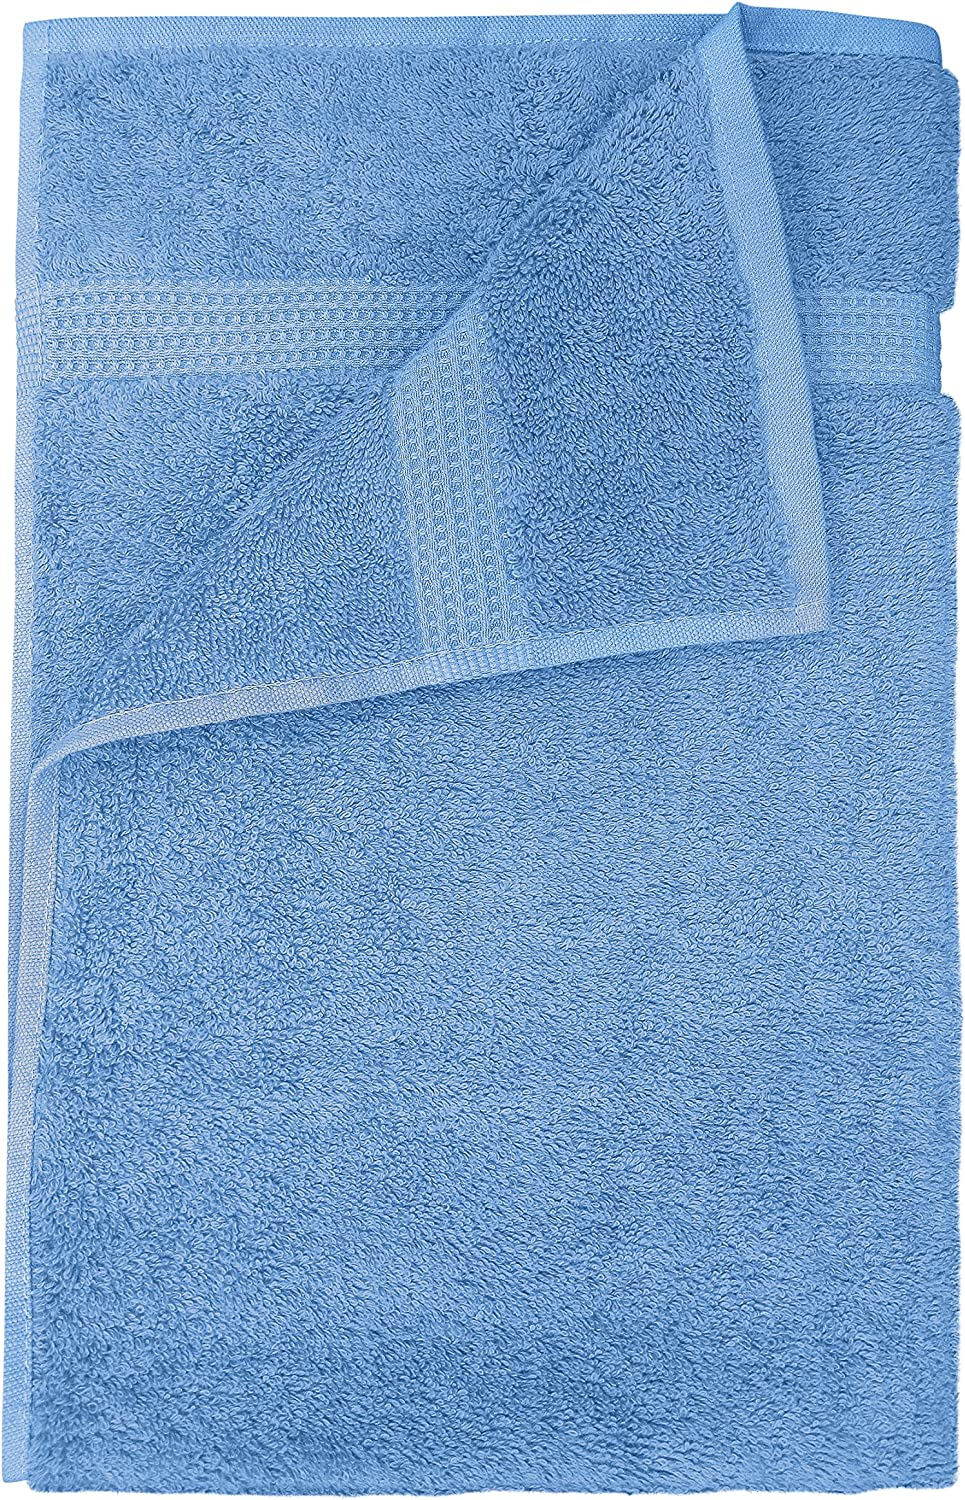 Cream, 30x30cm Face Bbank 100/% Pure Egyptian Cotton Towels Super Absorbent 600gsm